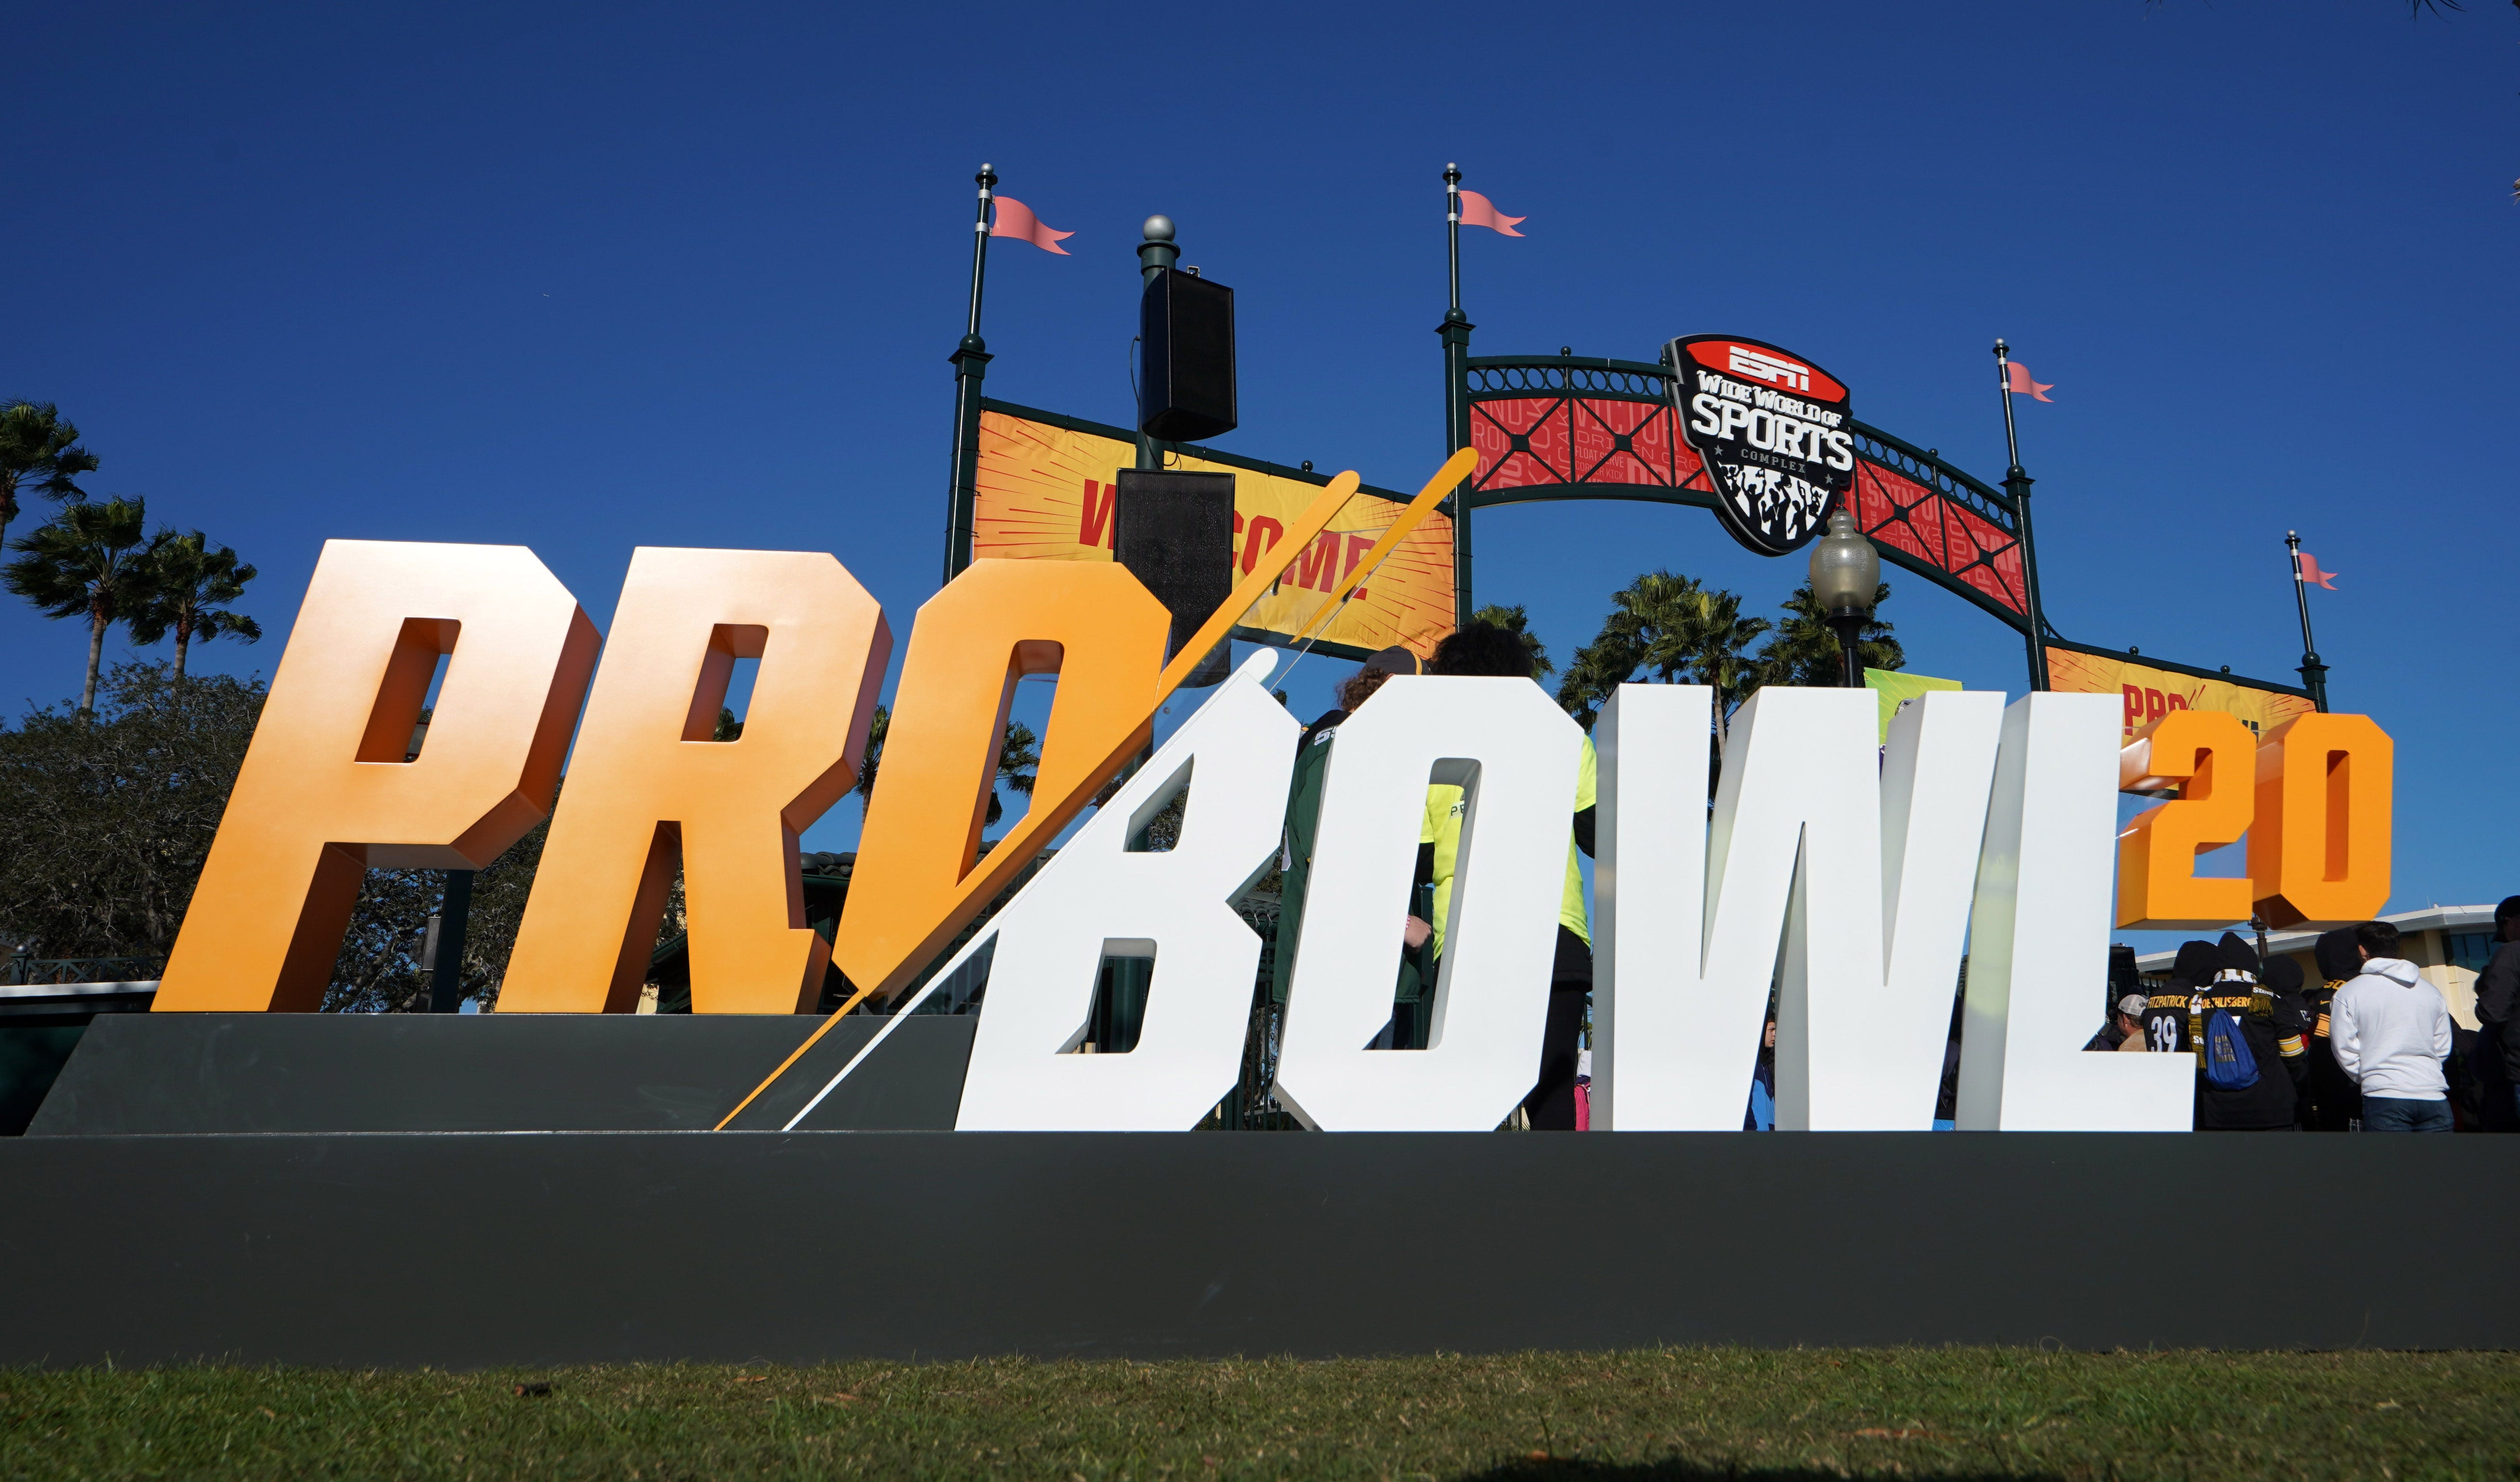 NFL Pro Bowl to be played virtually in Madden 21 game featuring Deshaun Watson, Kyler Murray